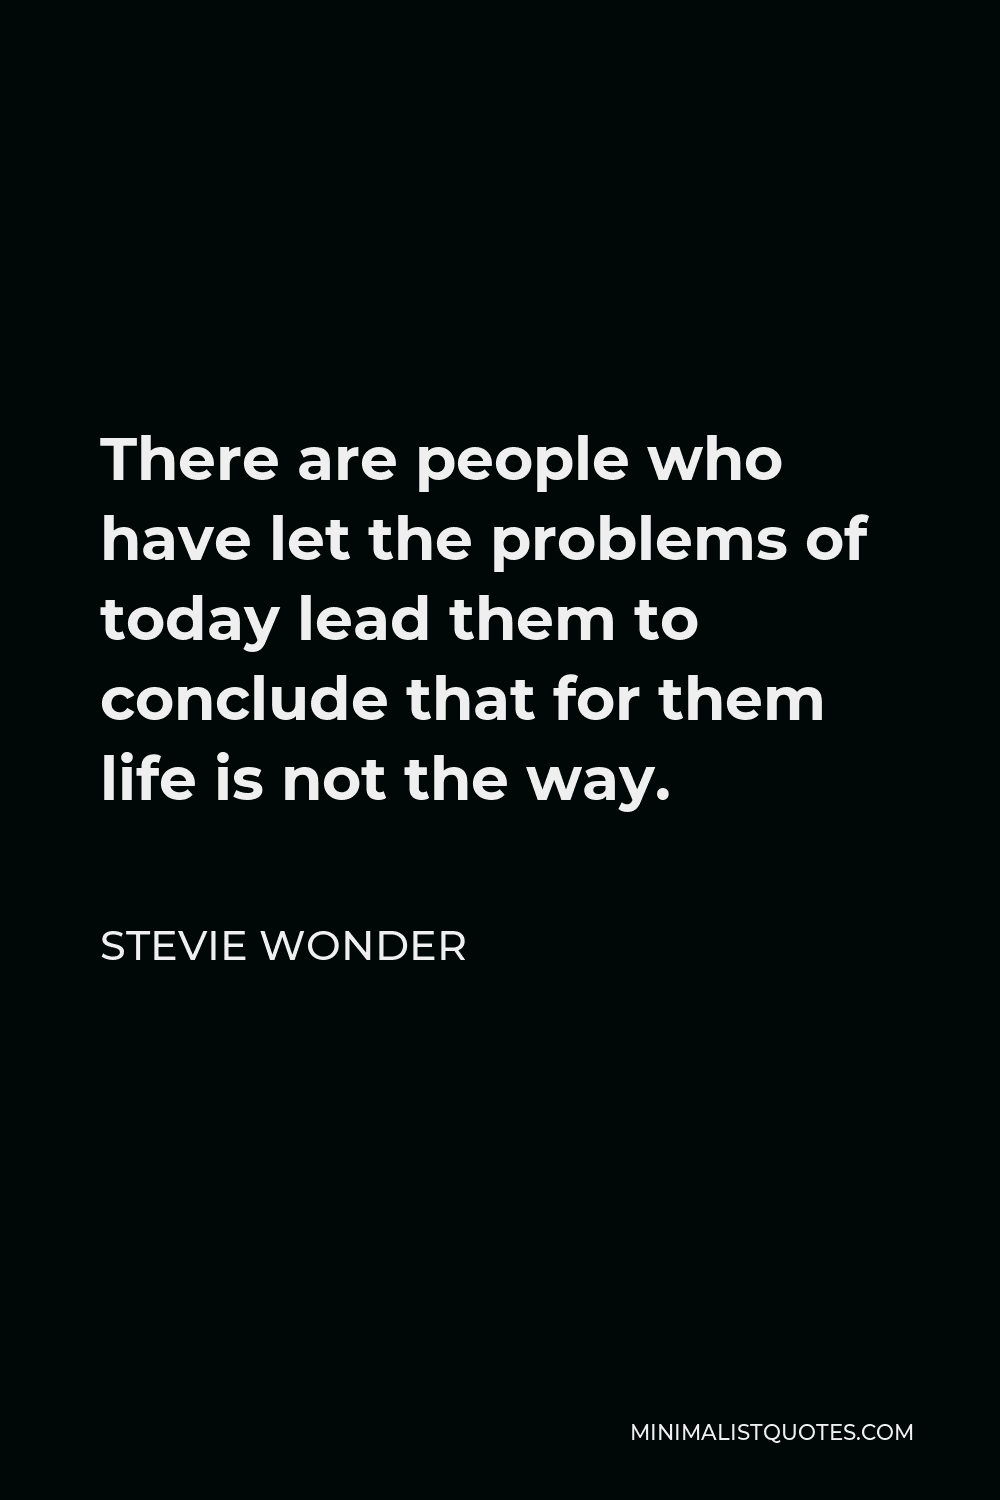 Stevie Wonder Quote - There are people who have let the problems of today lead them to conclude that for them life is not the way.